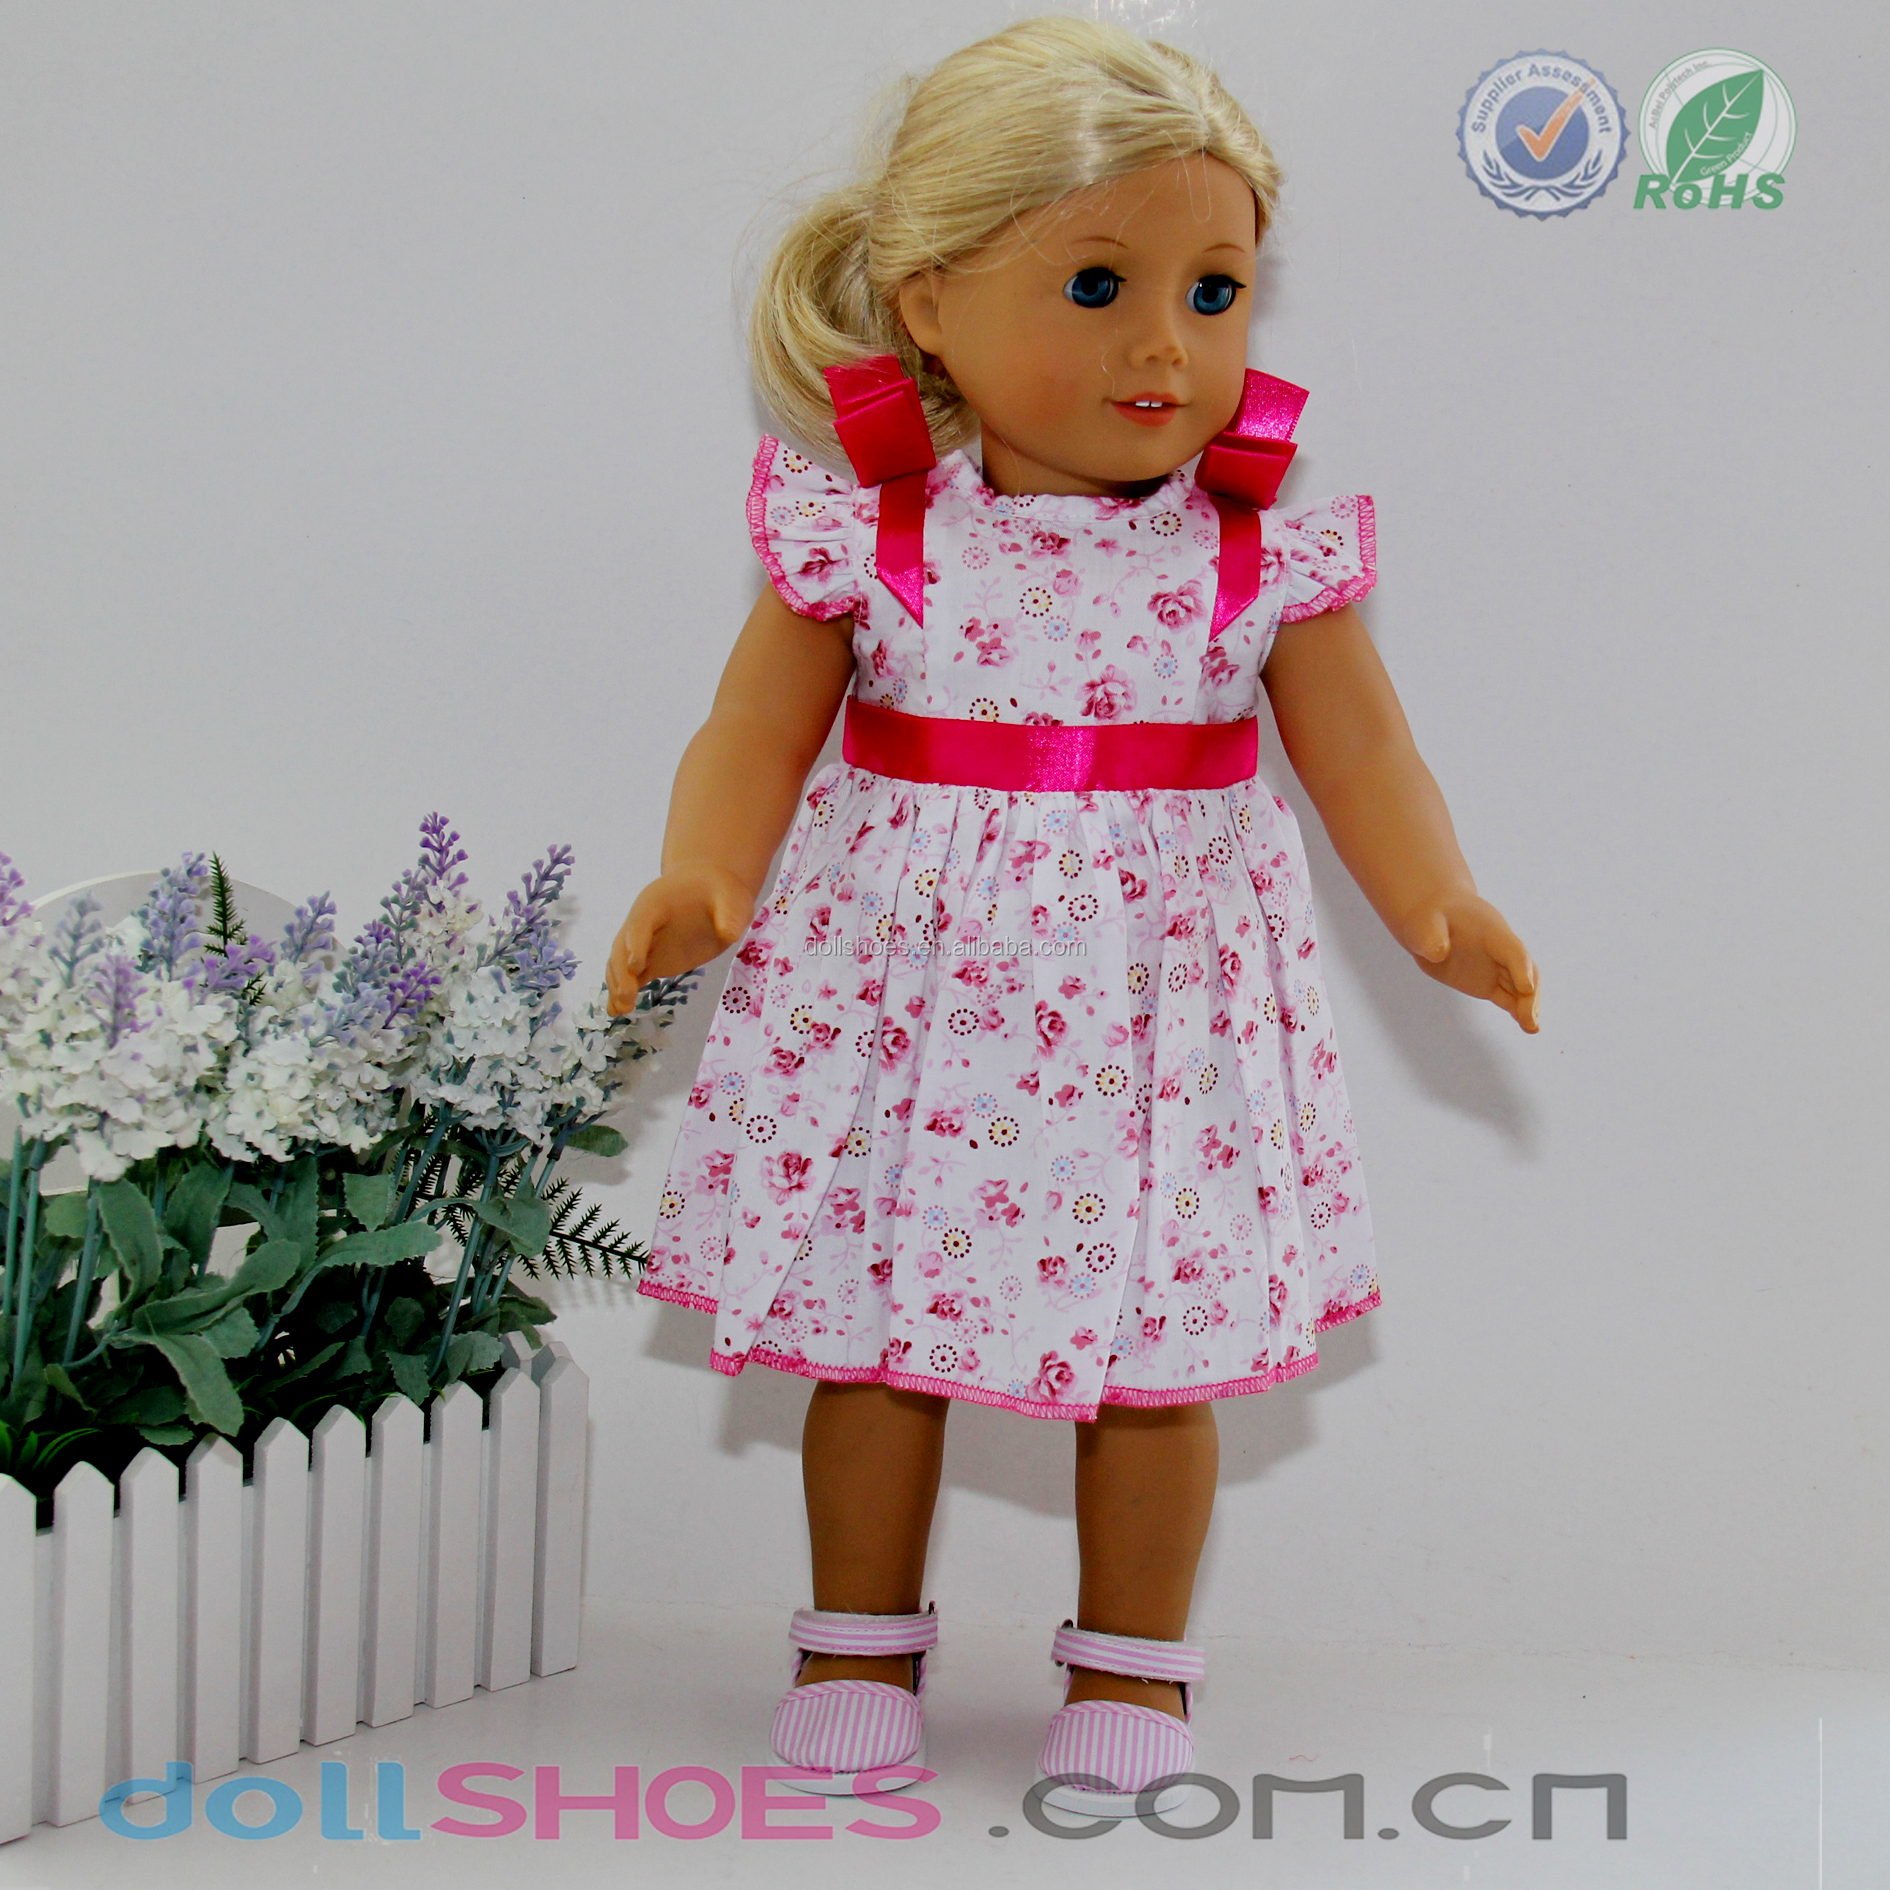 387cf4b17d5 Sunny Summer 18 Inch Amerian Girl Doll Dress - Buy American Gril ...